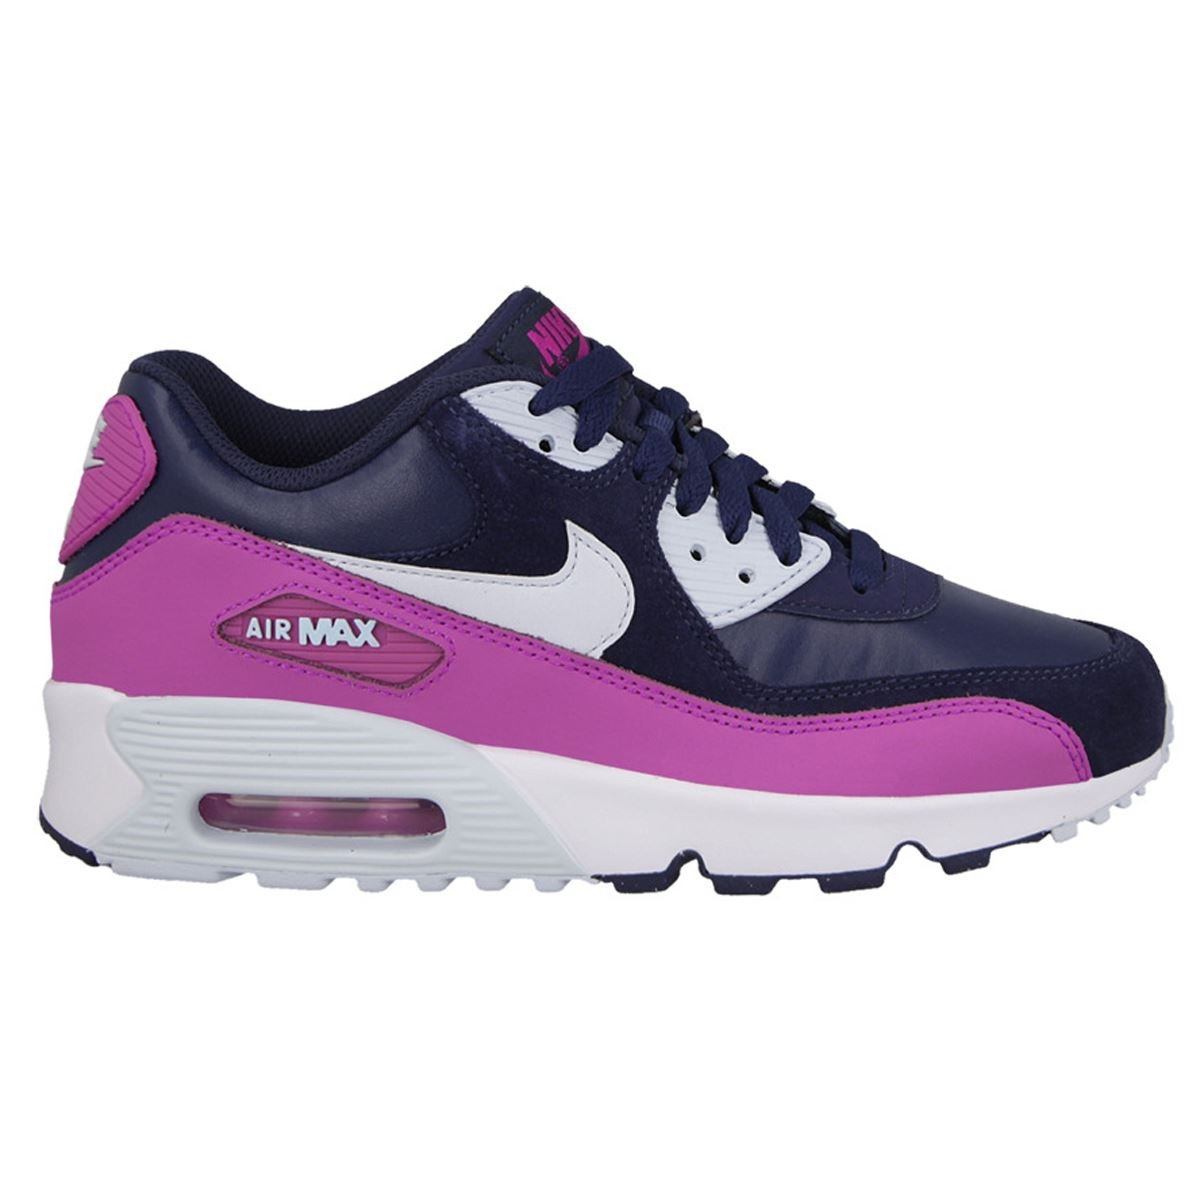 Nike Youths Air Max 90 Leather Multi Suede Trainers 39 EU